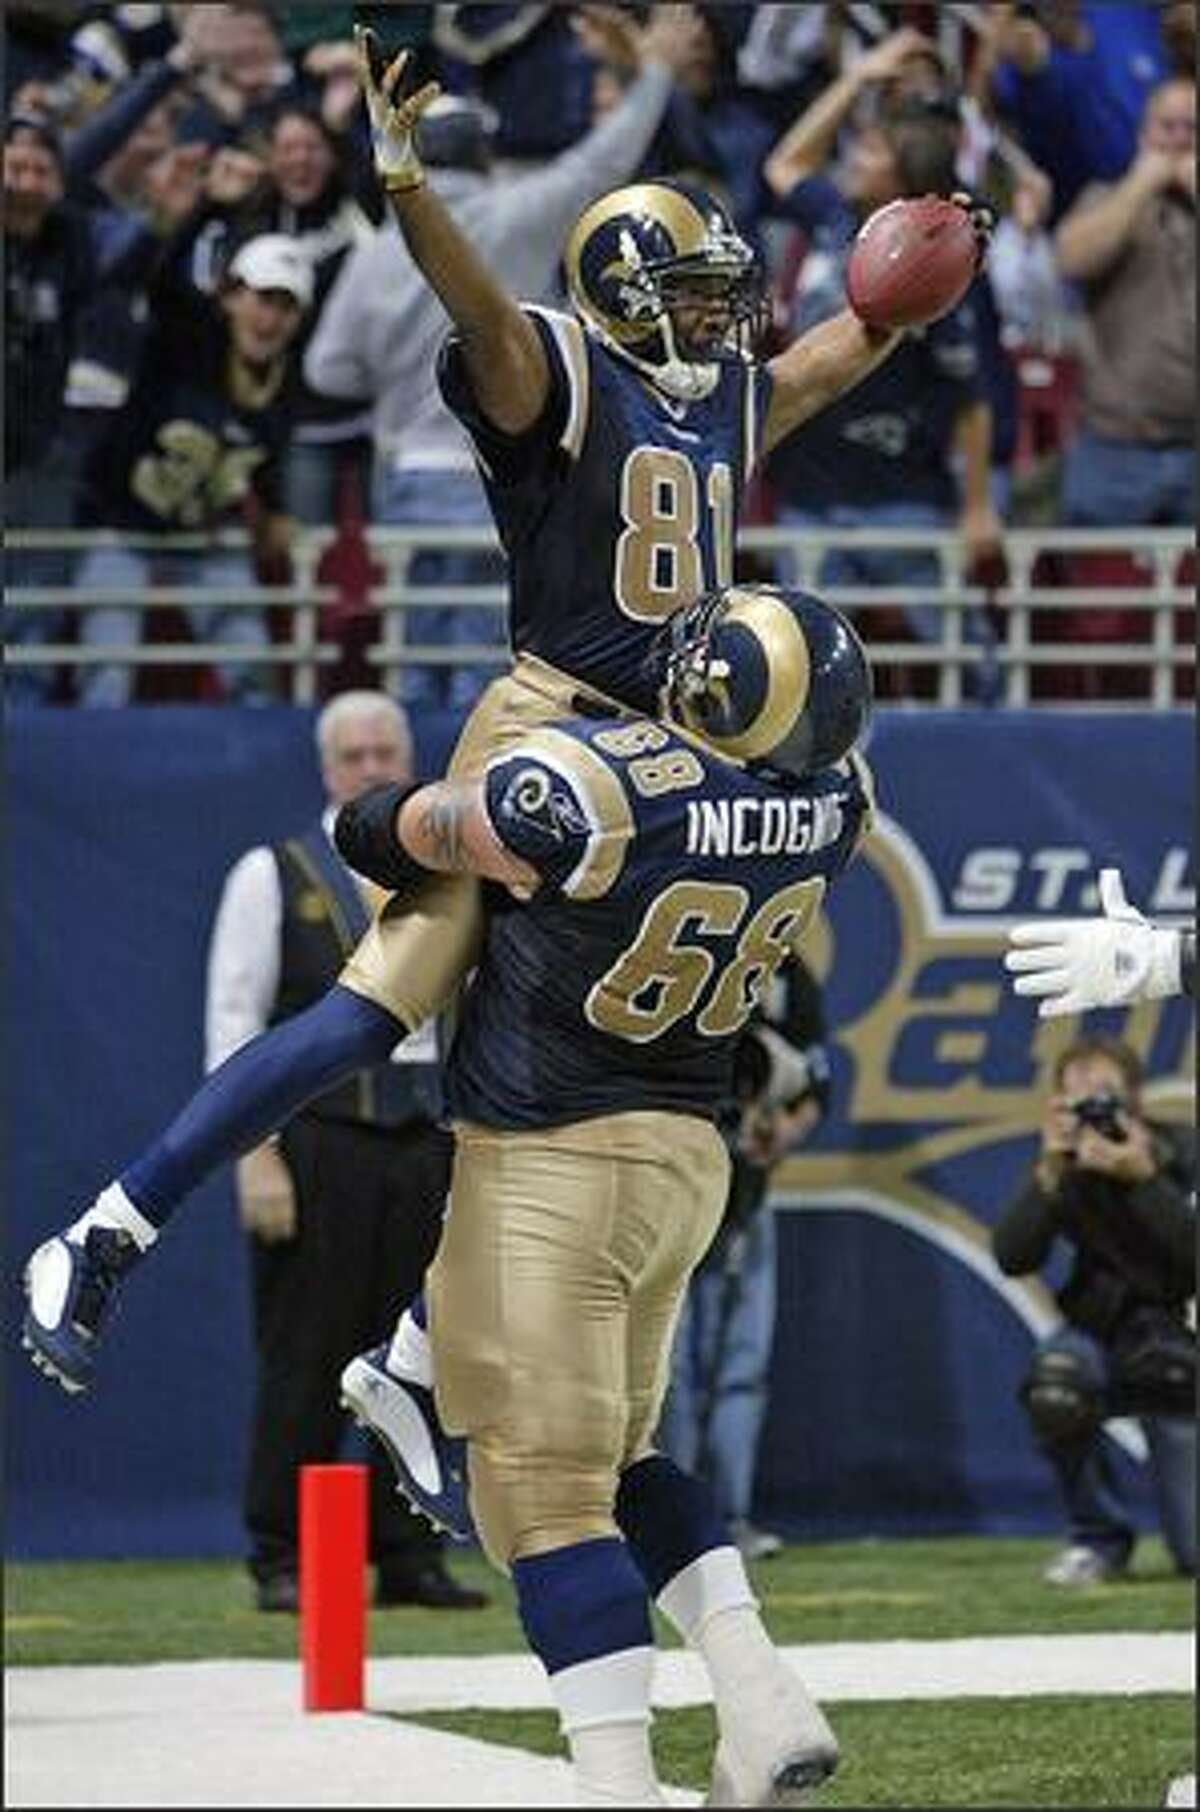 St. Louis Rams Torry Holt is lifted by teammate Richie Incognito after scoring the go-ahead 67 yard touchdown against the Seattle Seahawks during the fourth quarter of last Sunday's game -- which the Seahawks ended up winning 30-28.